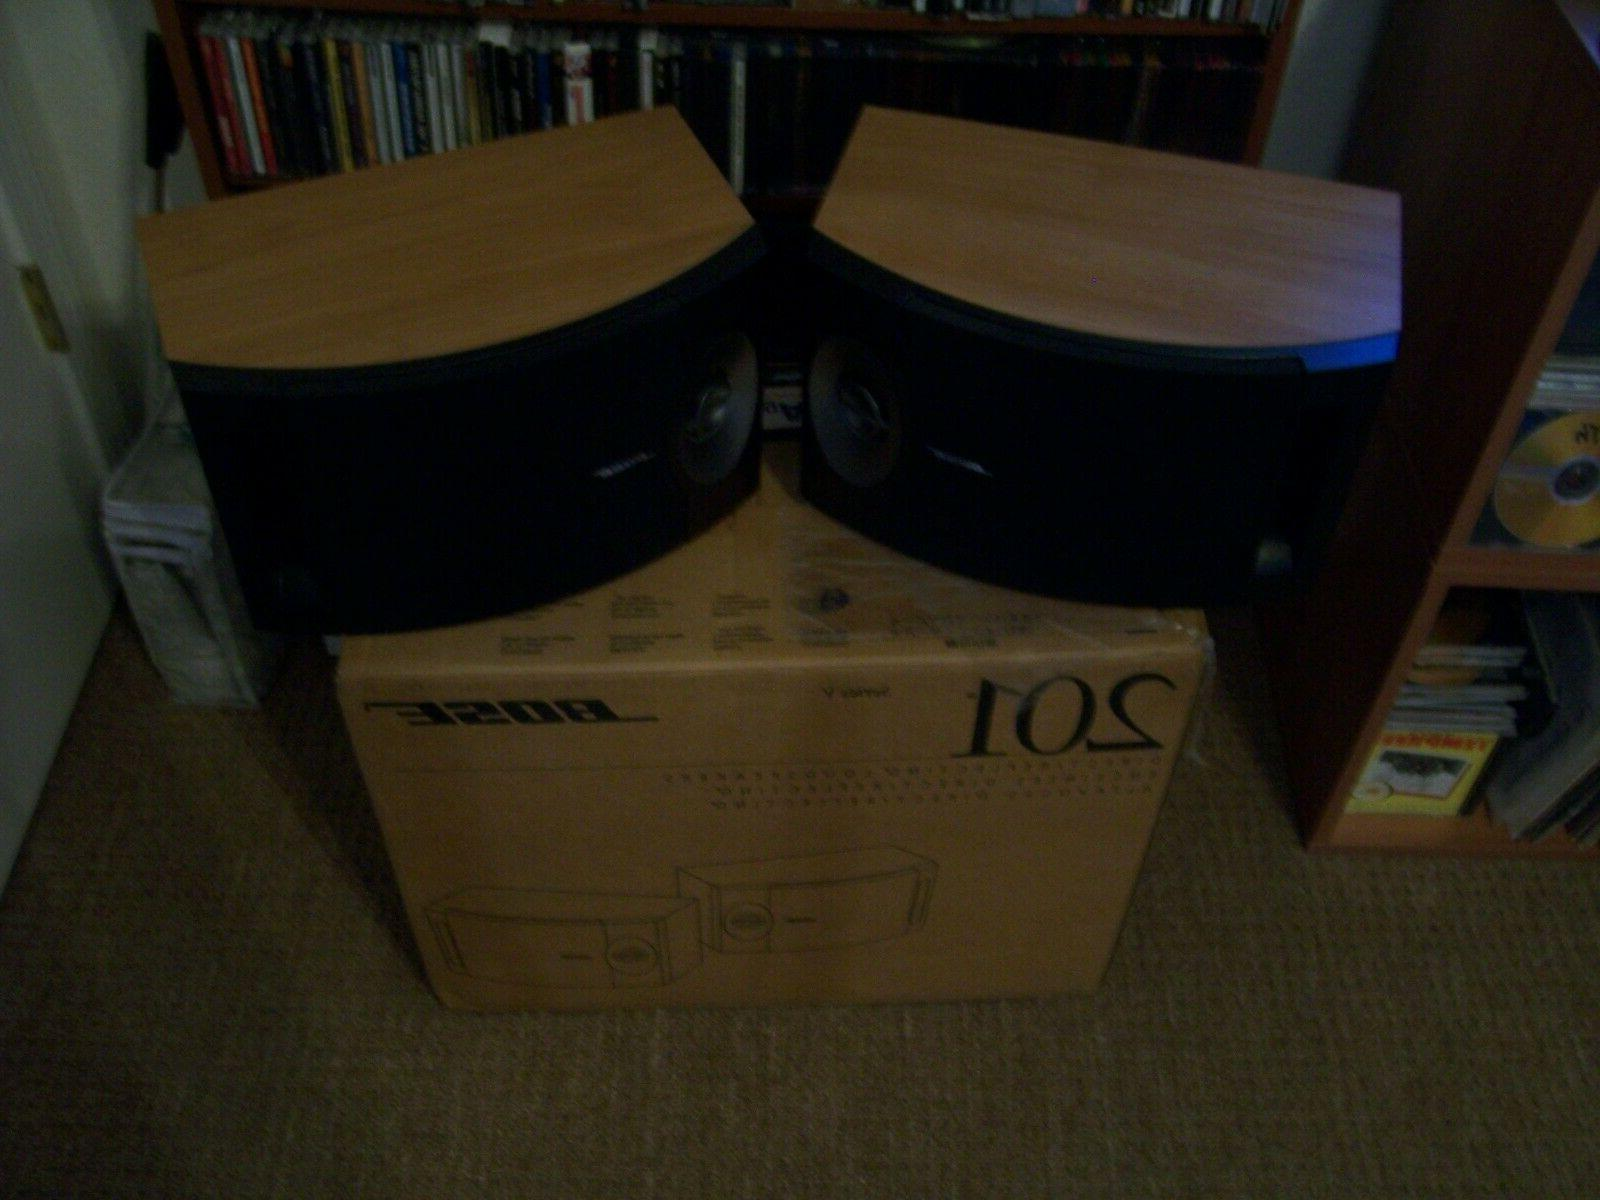 Bose 201 Series V Direct/Reflecting Speaker System Light Che